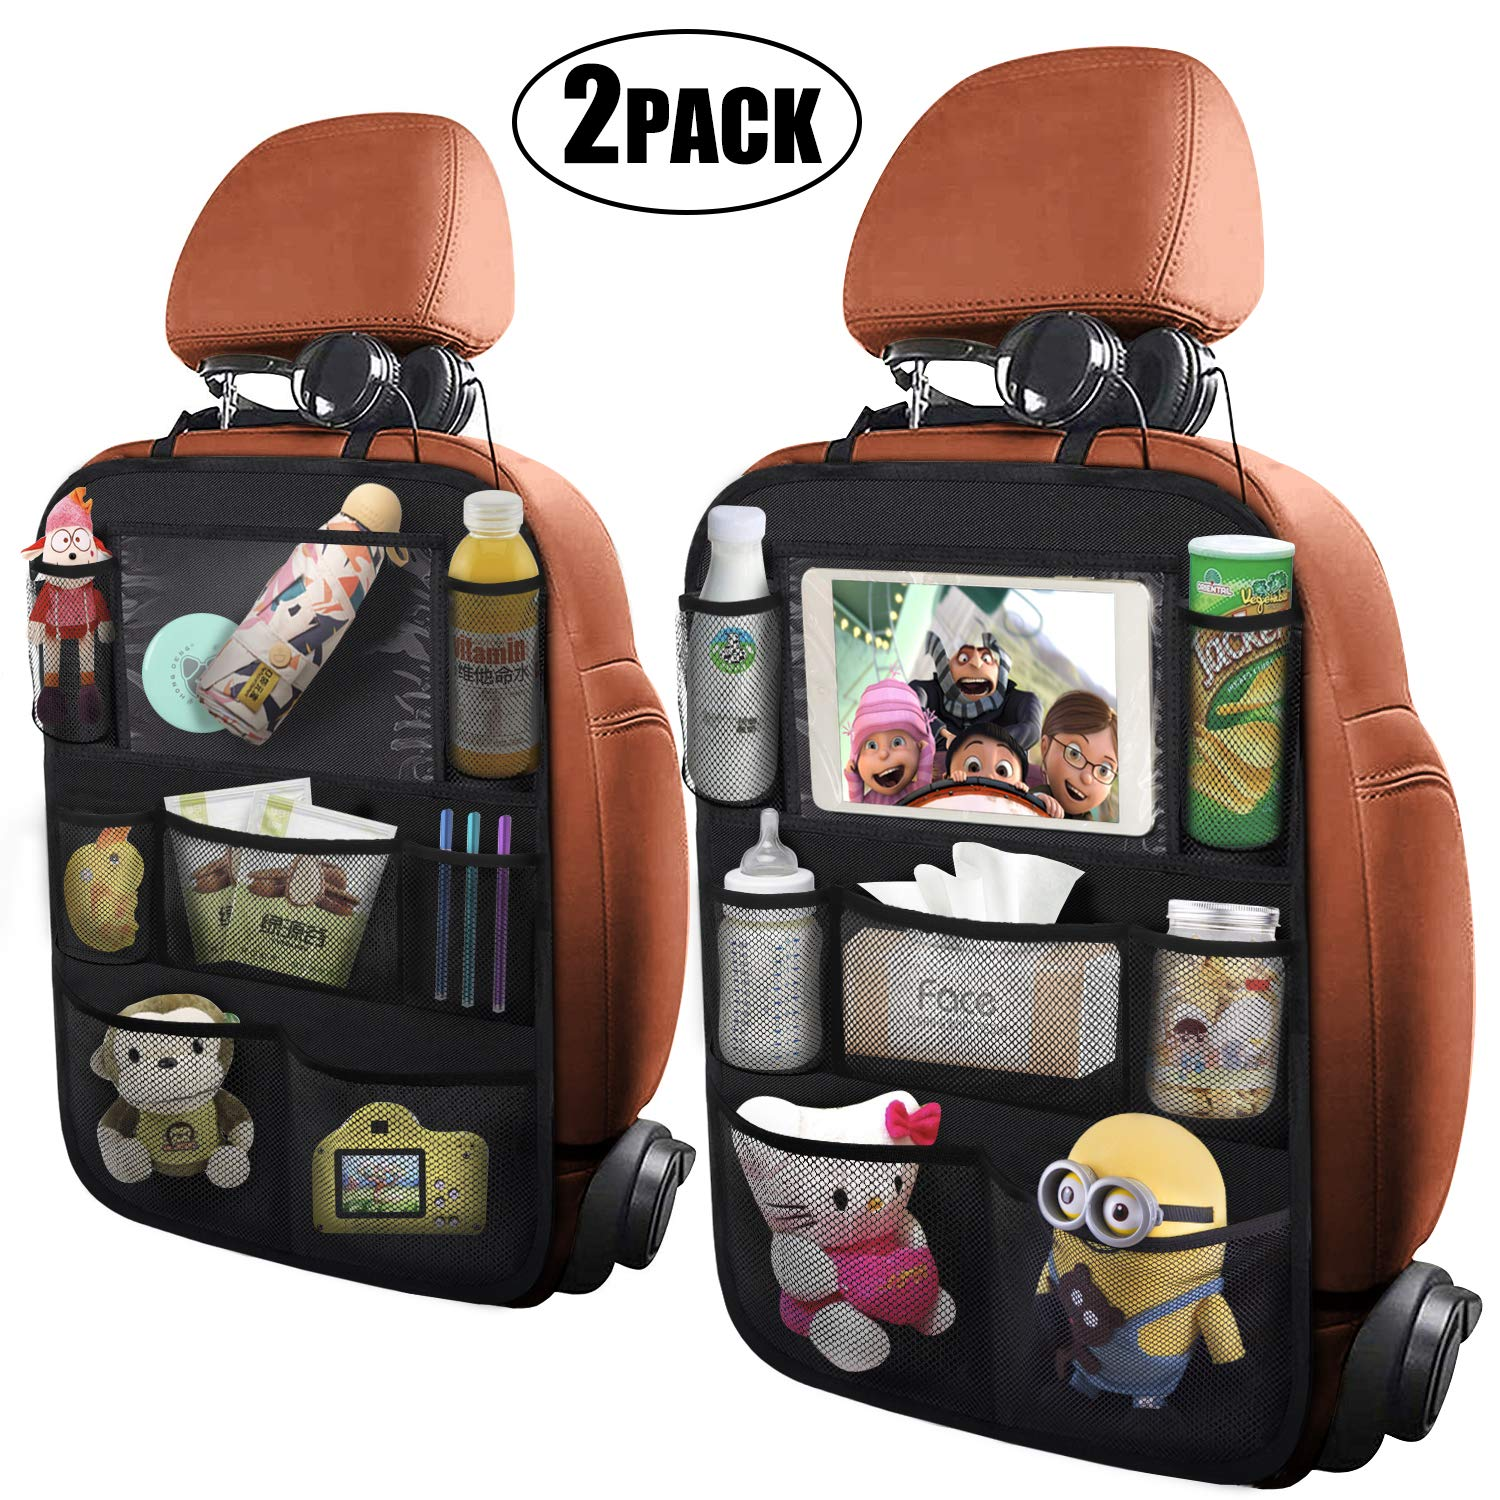 ONE PIX Car Backseat Organizer with Touch Screen Tablet Holder Kick Mats Seat Back Protectors for Kids and Toddlers Premium Vehicle Travel Accessories 7 Storage Pockets 2 Pack